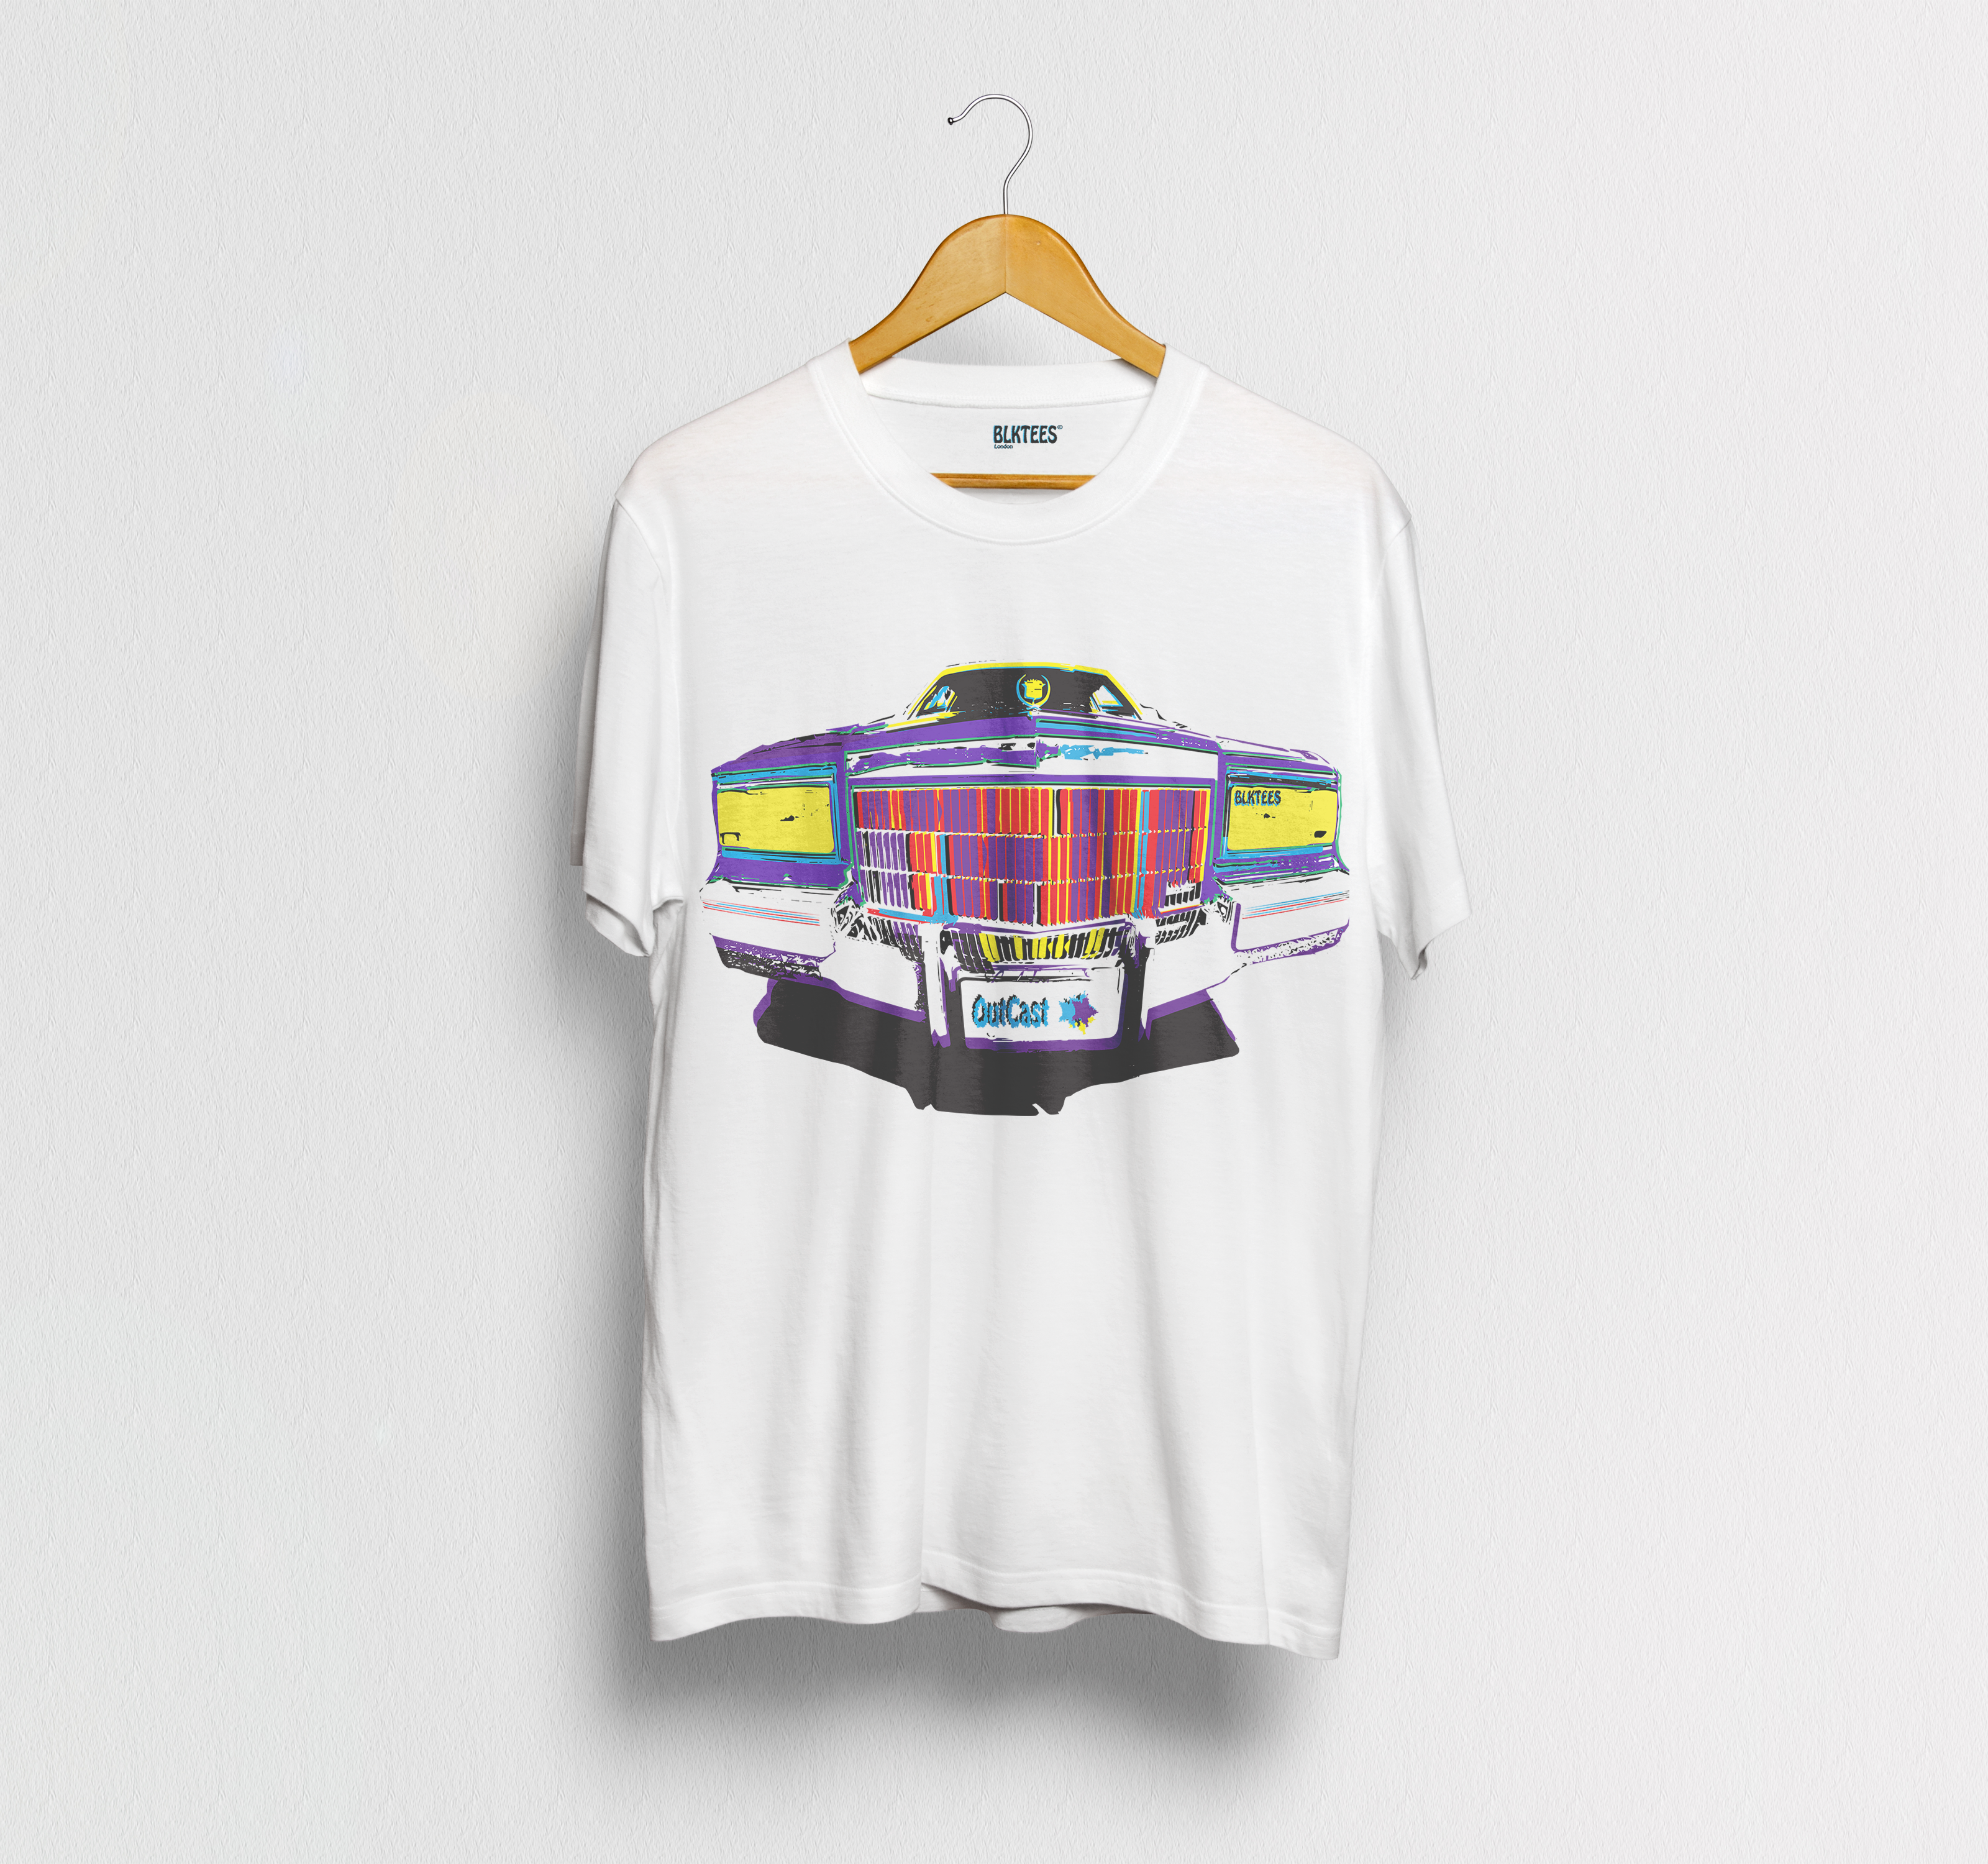 Shirt design london - Blktees Is A London Based T Shirt Design Group We Are Made Up Of